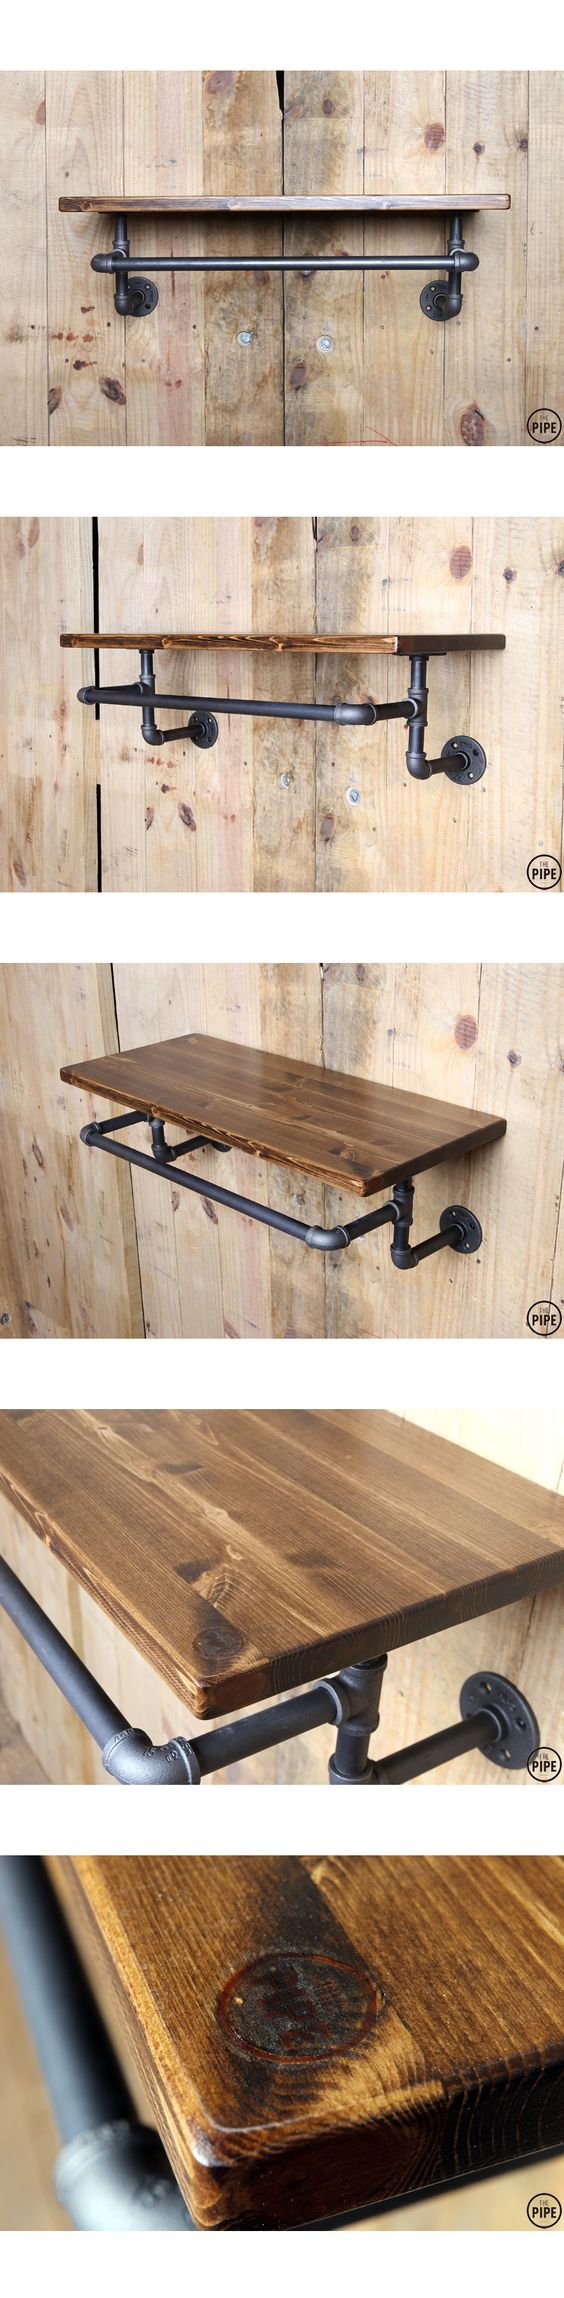 Use a longer shelf/pipe, attach hooks to hang chairs, etc from pipe? Stack  baskets on top | Repairing Tips and Tricks | Pinterest | Long shelf, ...